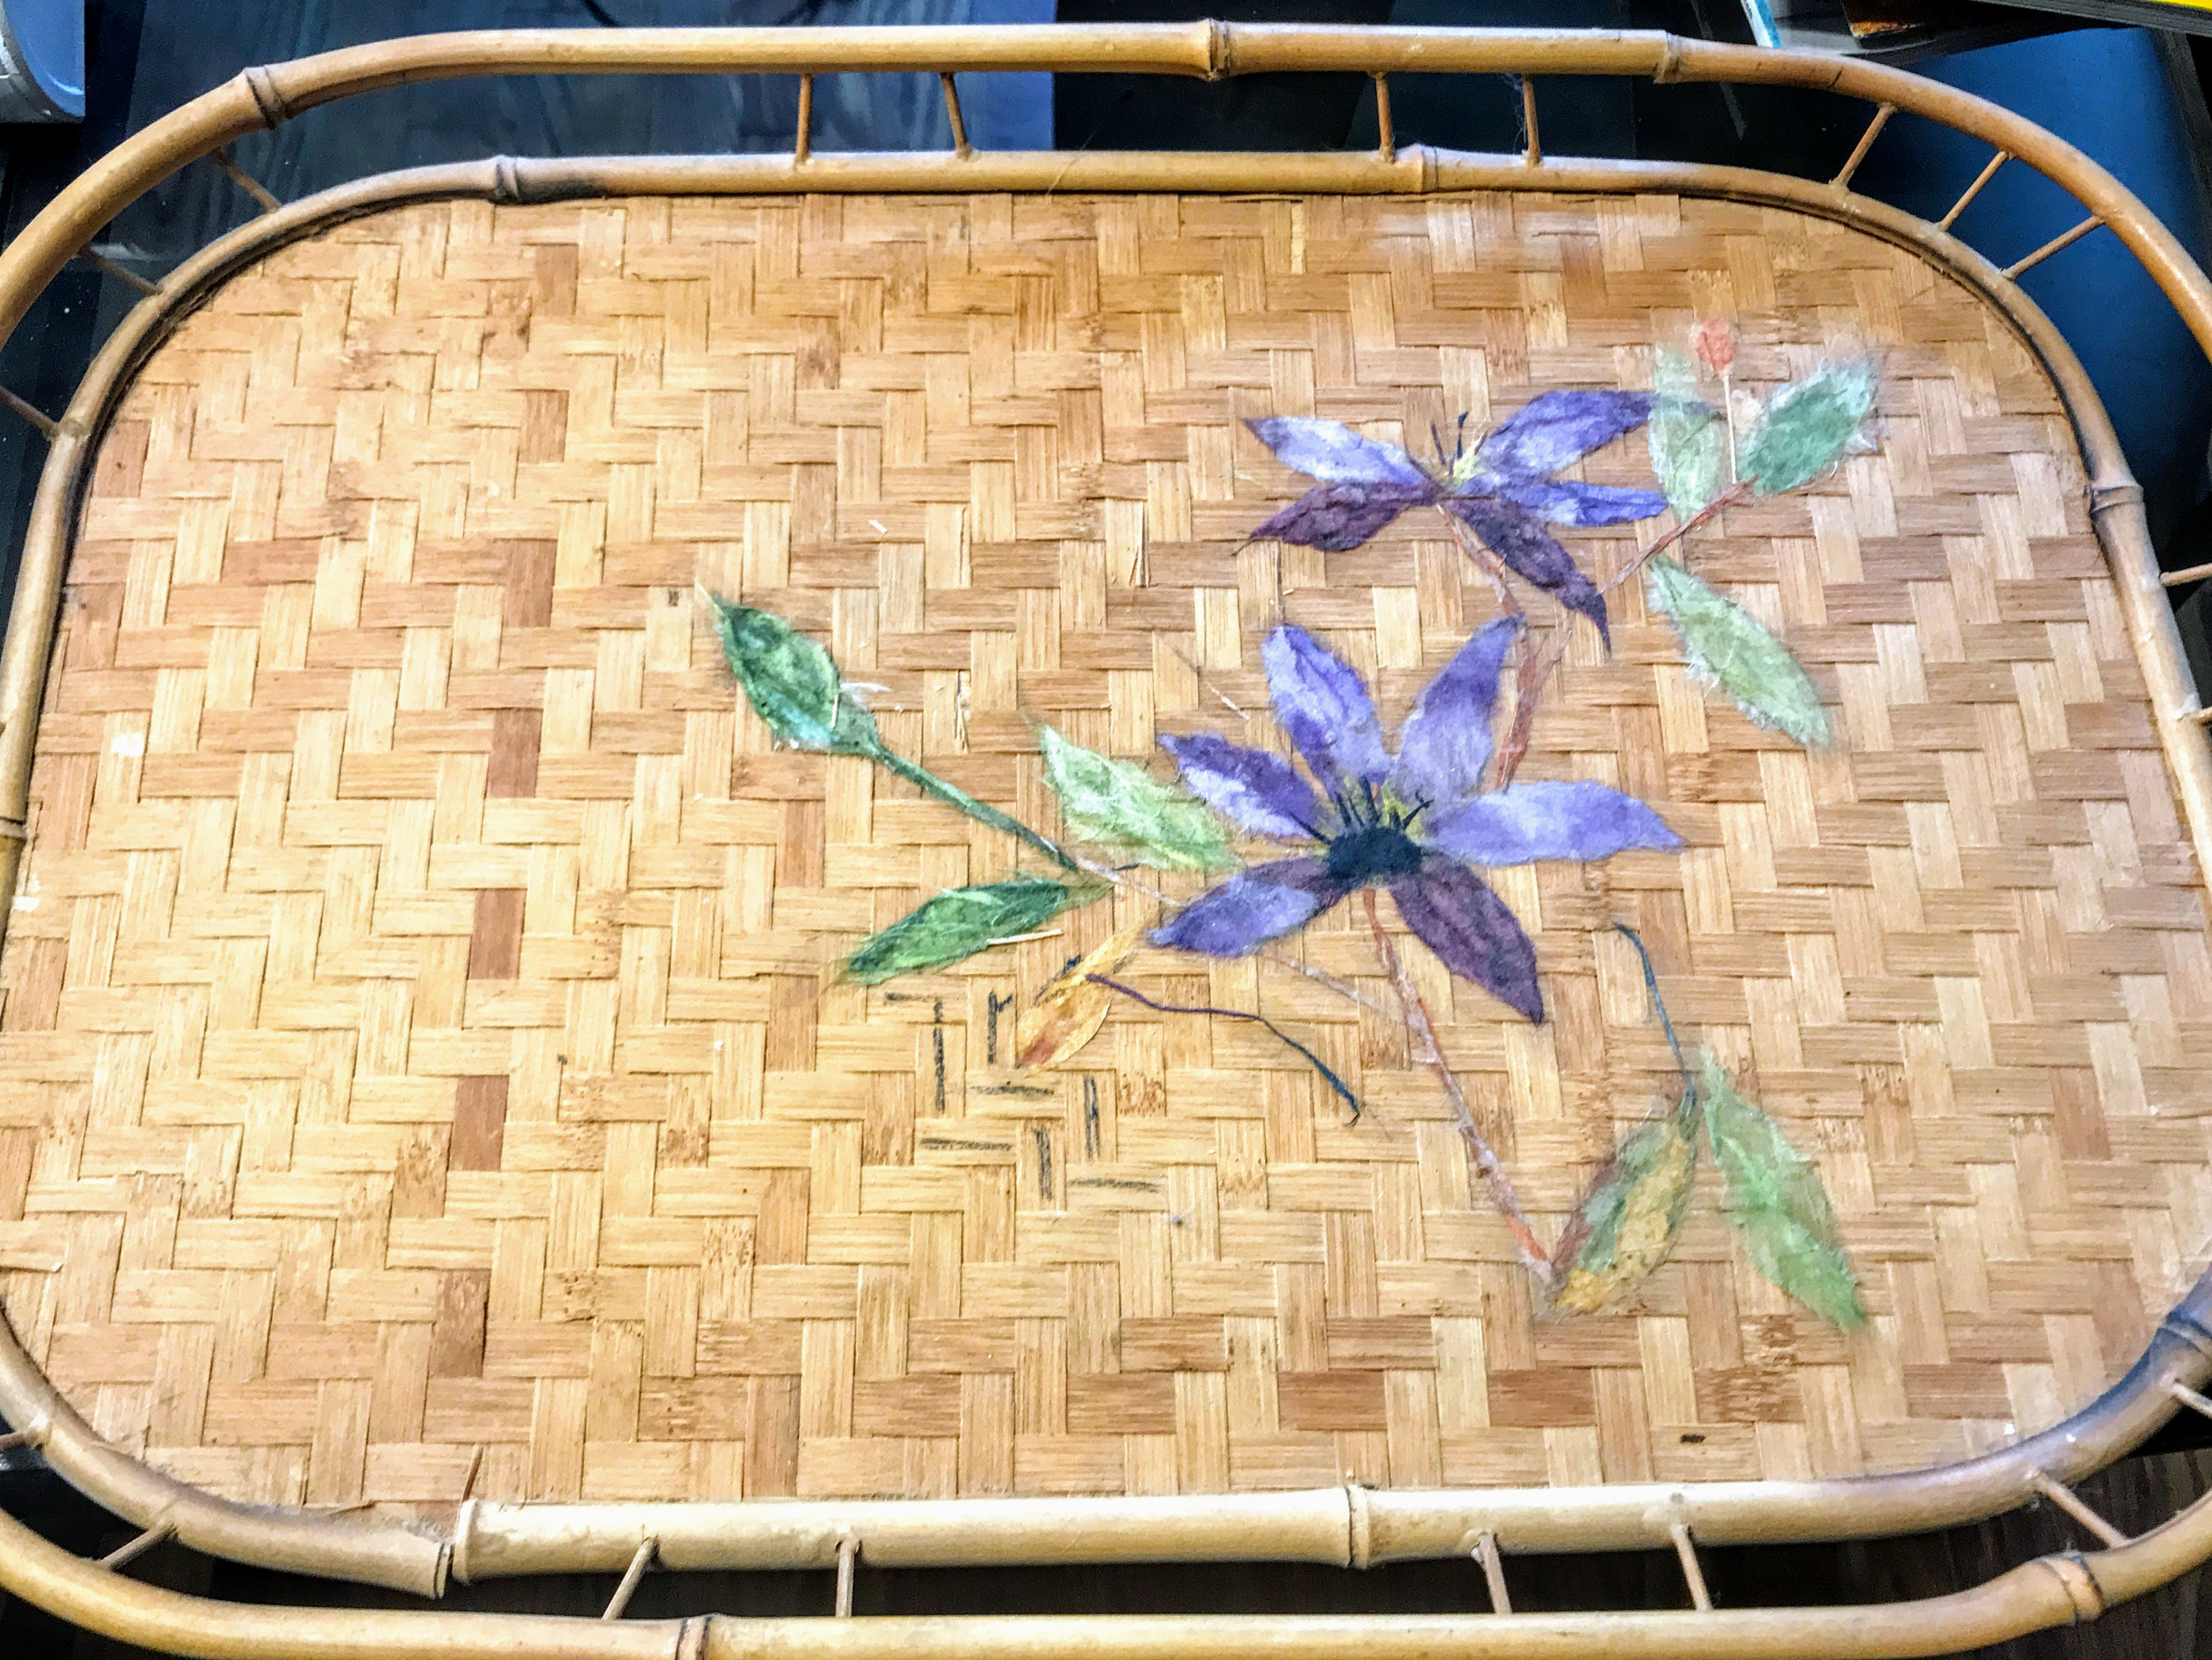 Chigirie transforms a serving tray from bland to beautiful with washi art